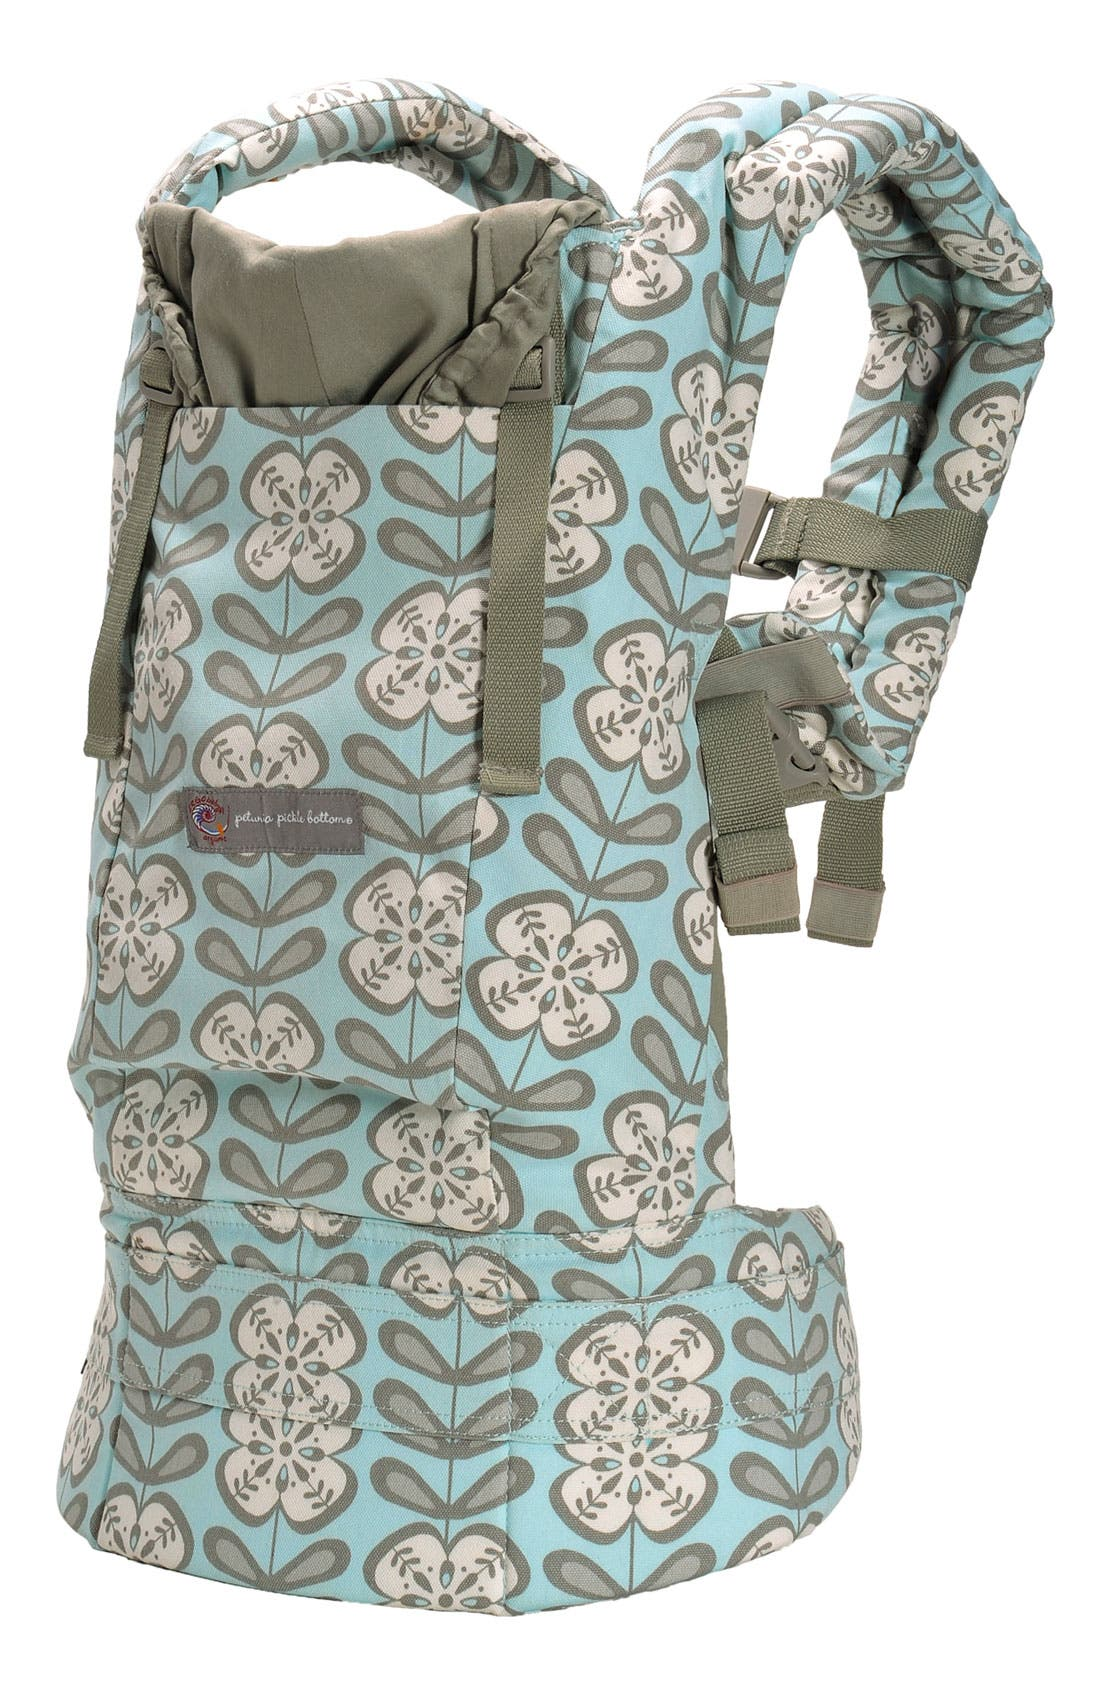 Baby Carrier with Petunia Pickle Bottom Print,                         Main,                         color, Peaceful Portofino